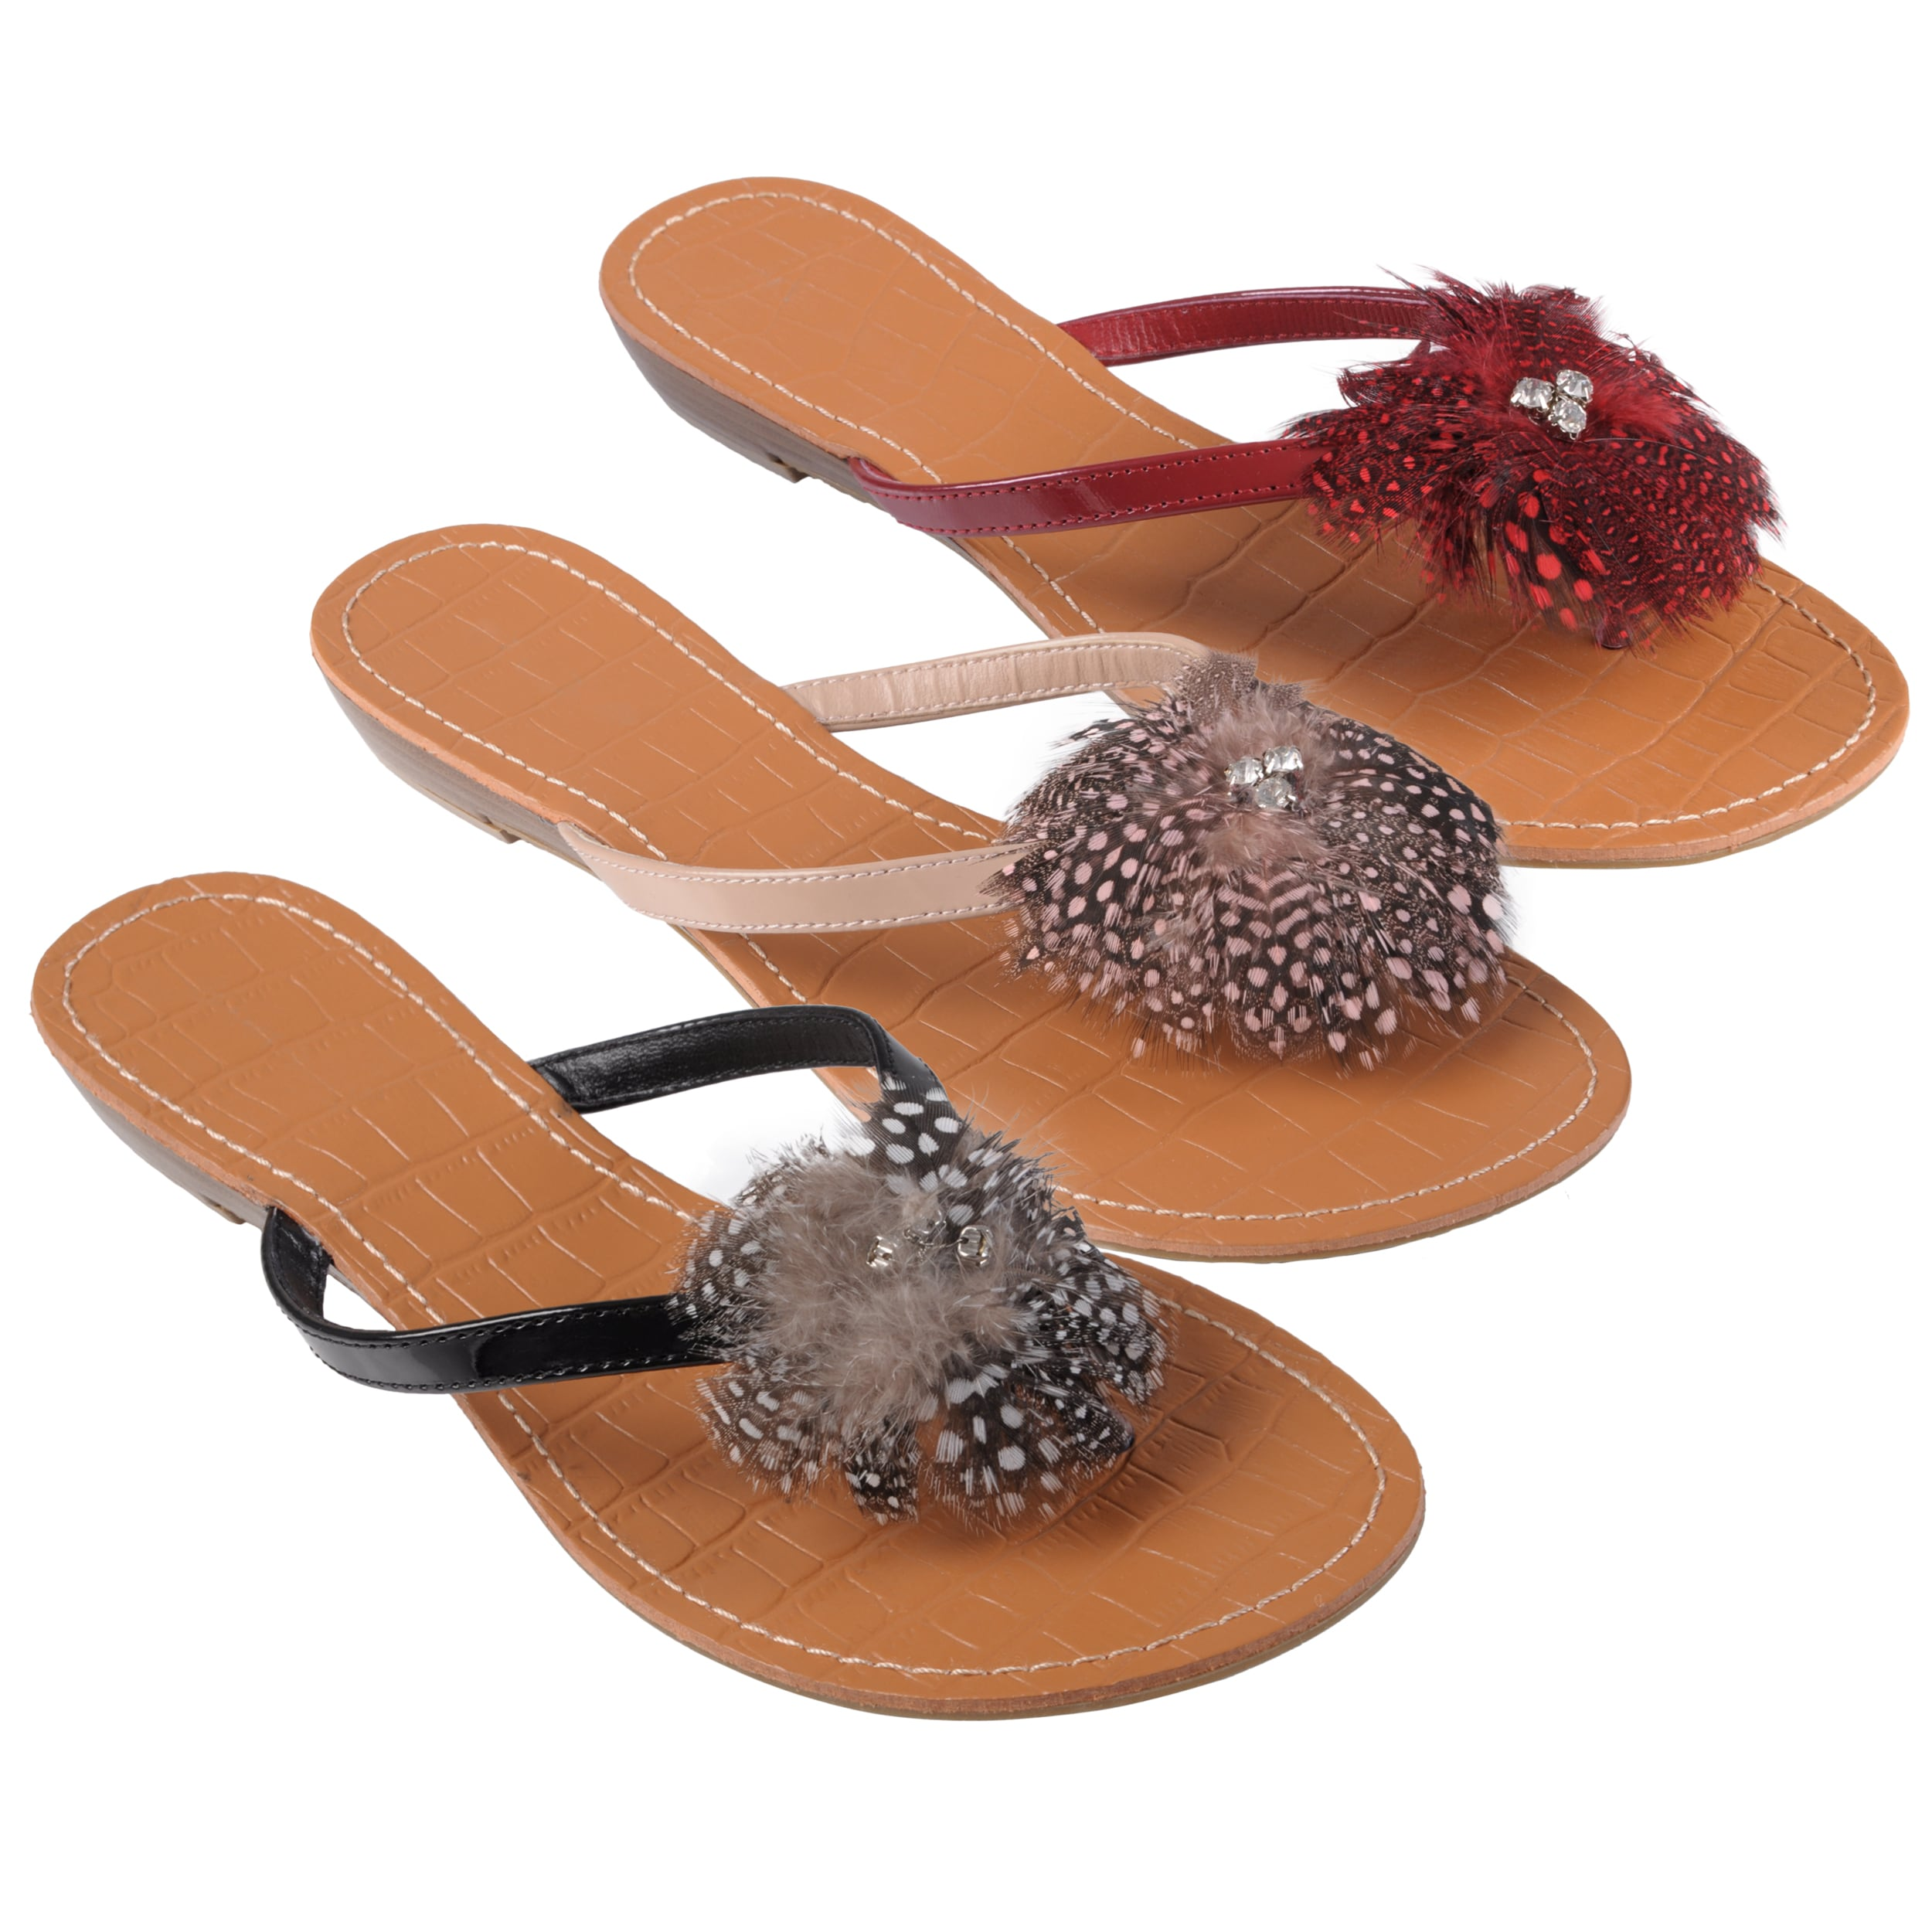 Journee Collection Women's 'Foal-25' Feather Thong Sandals